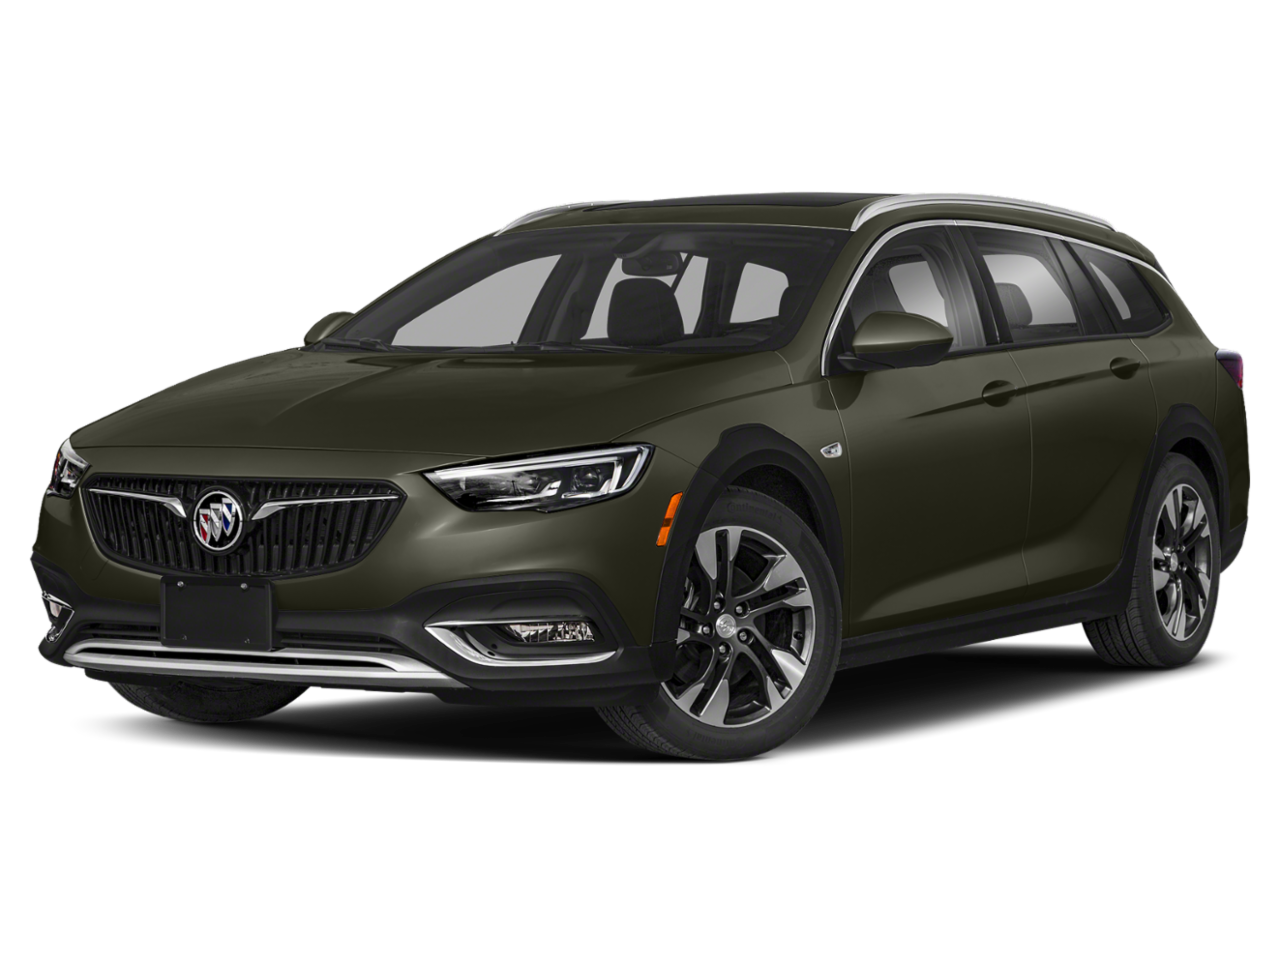 Buick 2019 Regal TourX Preferred